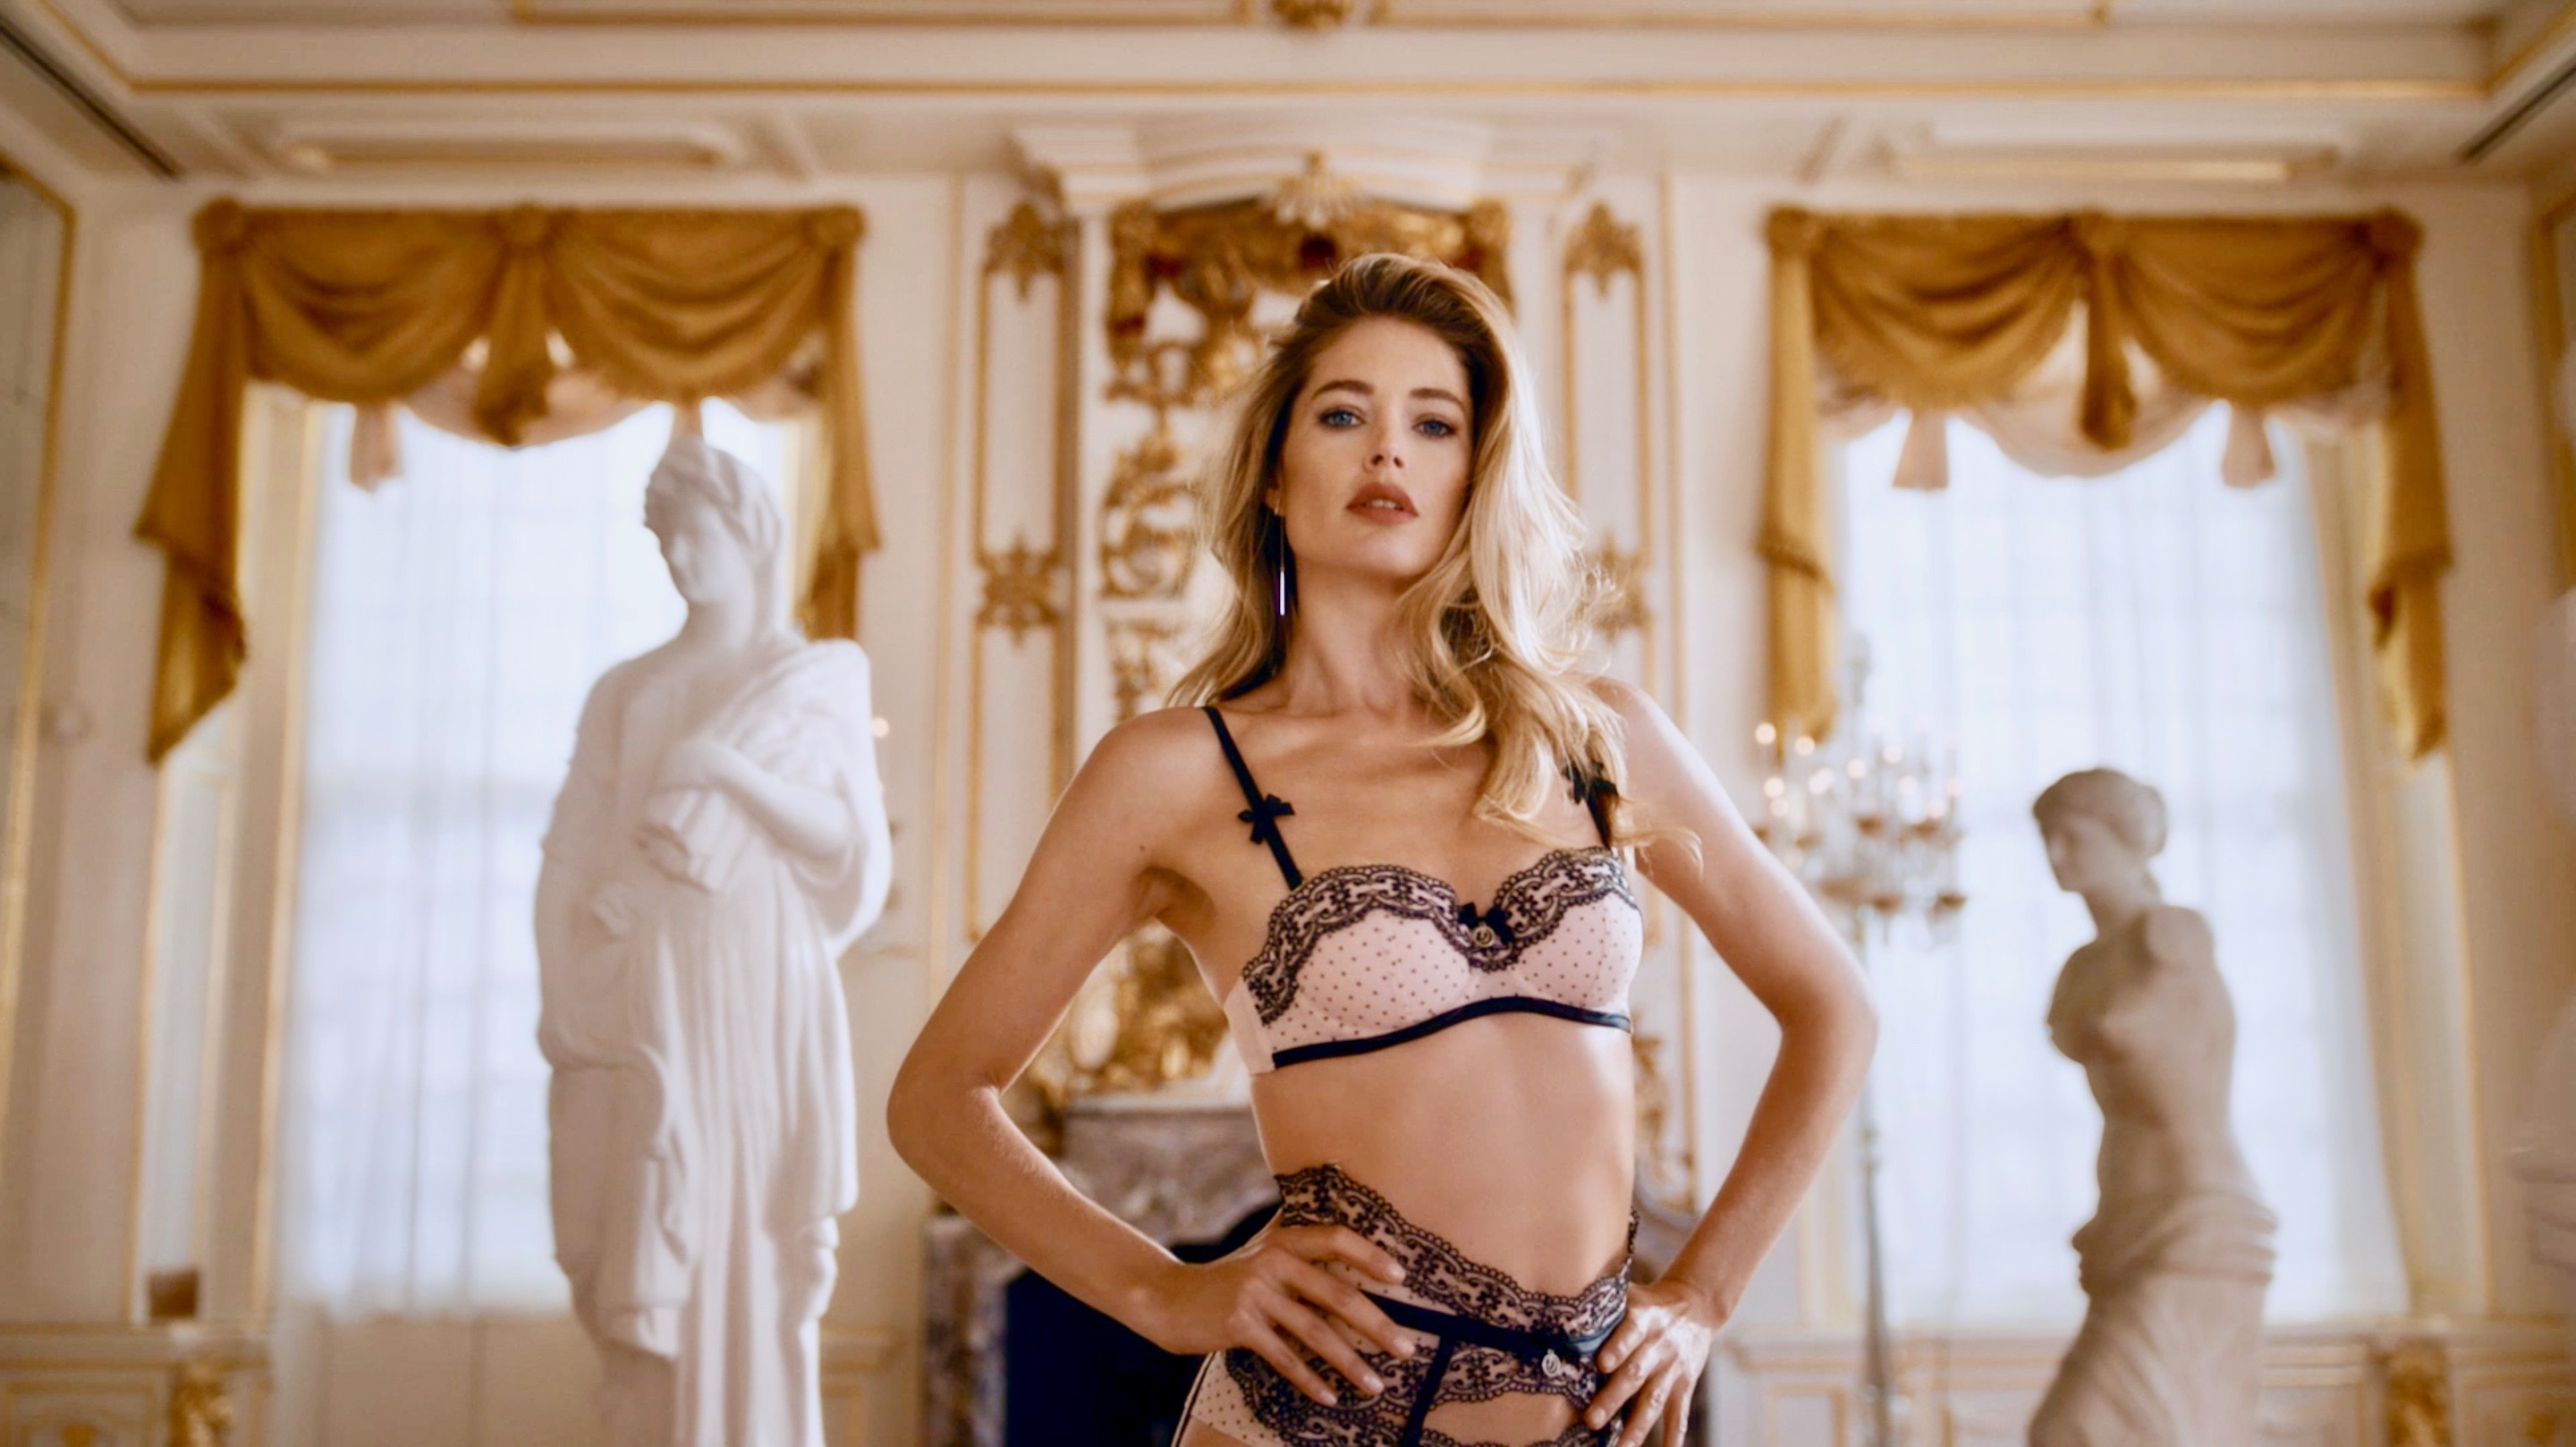 Doutzen Kroes Dances Through Nina Aaldering's Steamy Ad for Hunkemöller